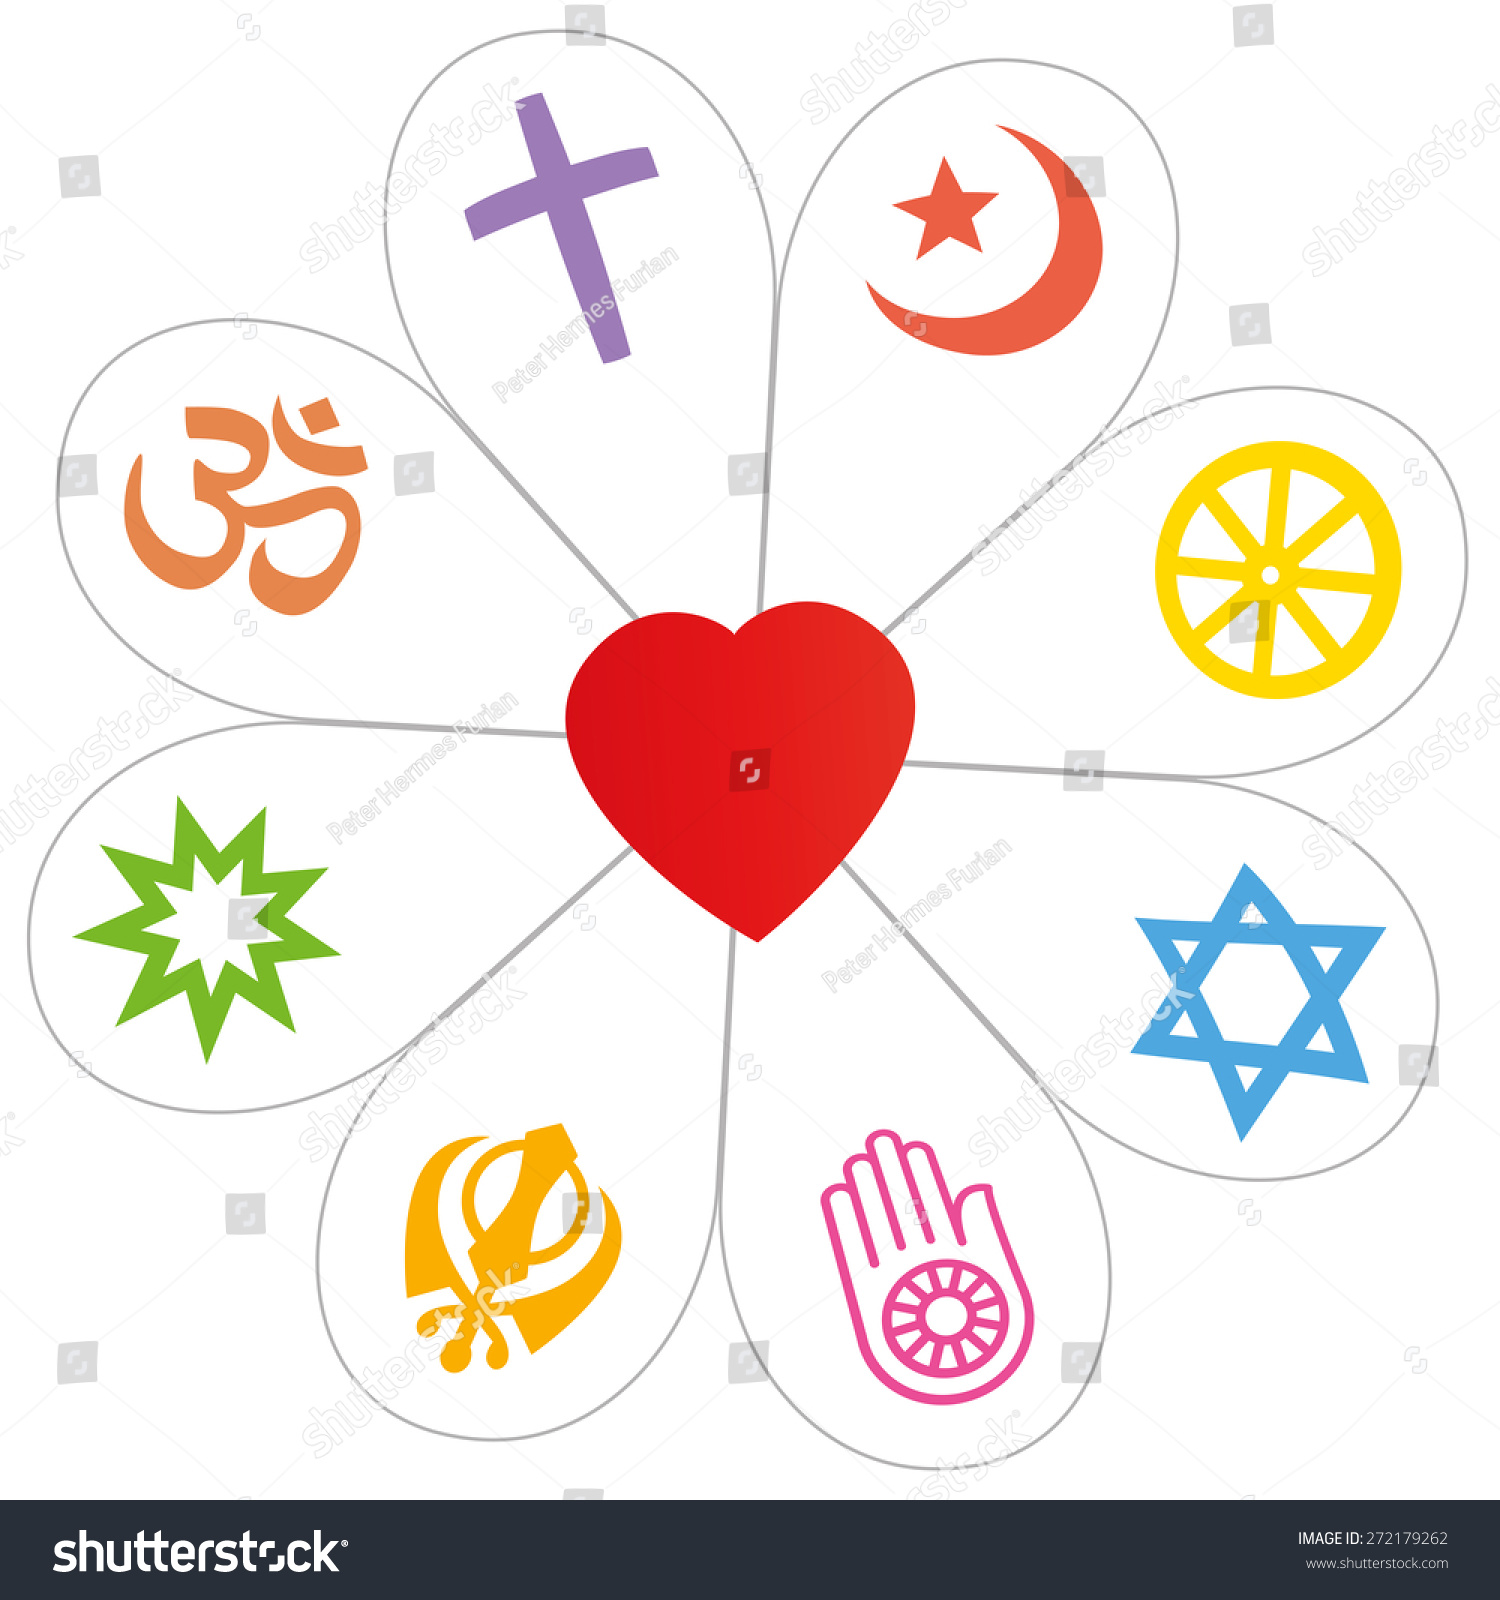 Religion symbols that form flower heart stock vector 272179262 religion symbols that form a flower with a heart as a symbol for religious unity or buycottarizona